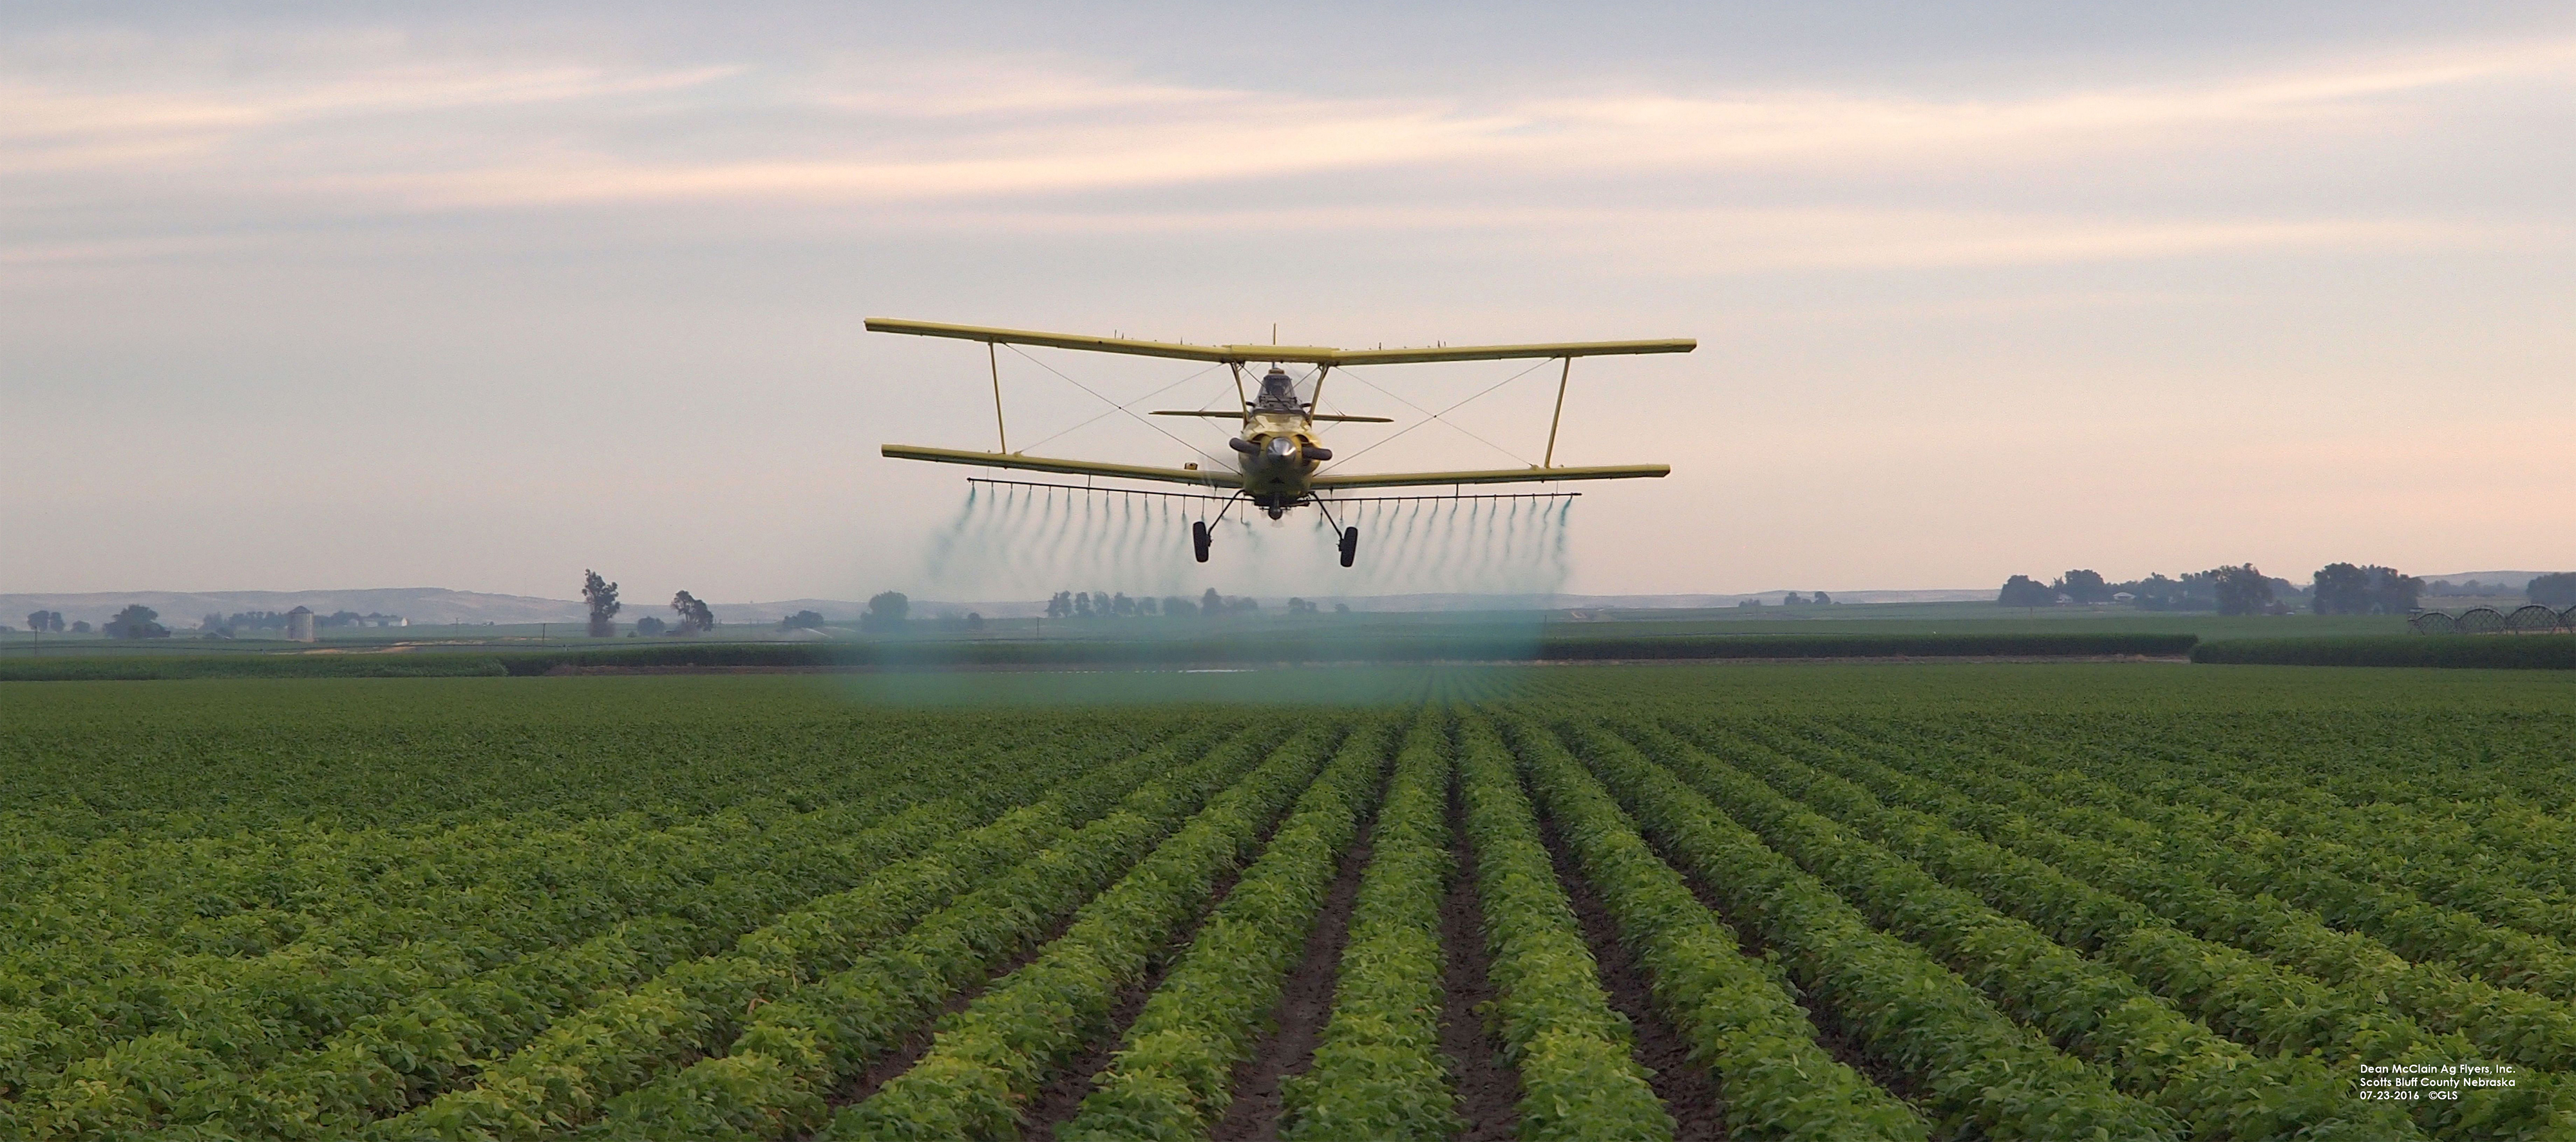 Aerial application of pesticides in beans. (Photo by Gary Stone)